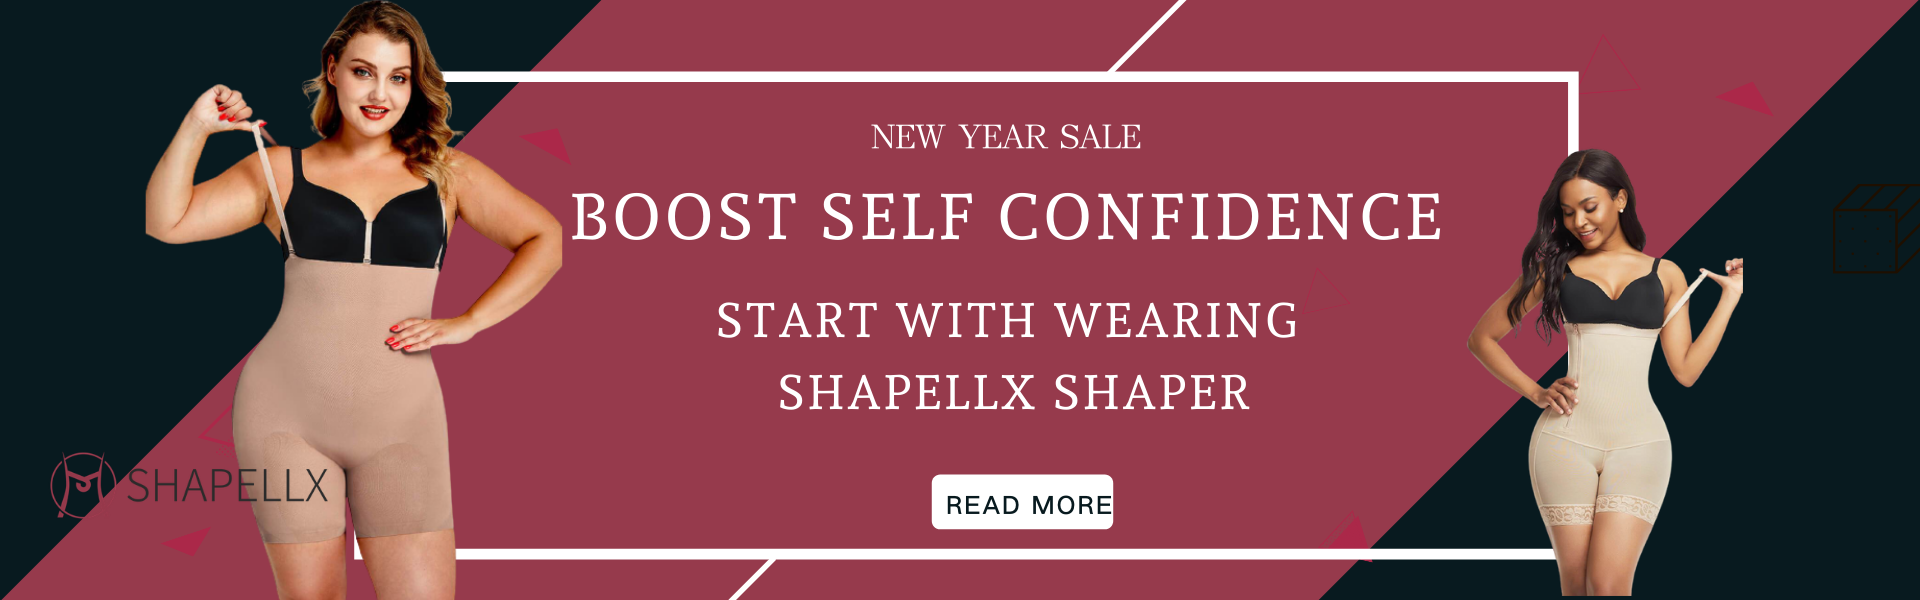 Boost Self Confidence: Start With Wearing Shapellx Shaper